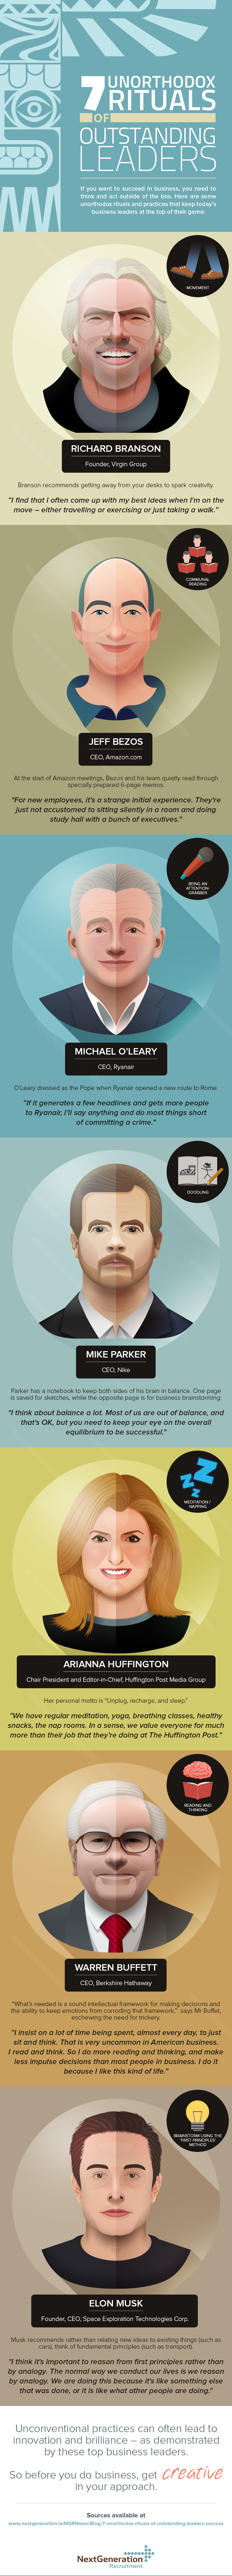 The Offbeat Habits of 15 Famous Leaders Infographic   Business ...